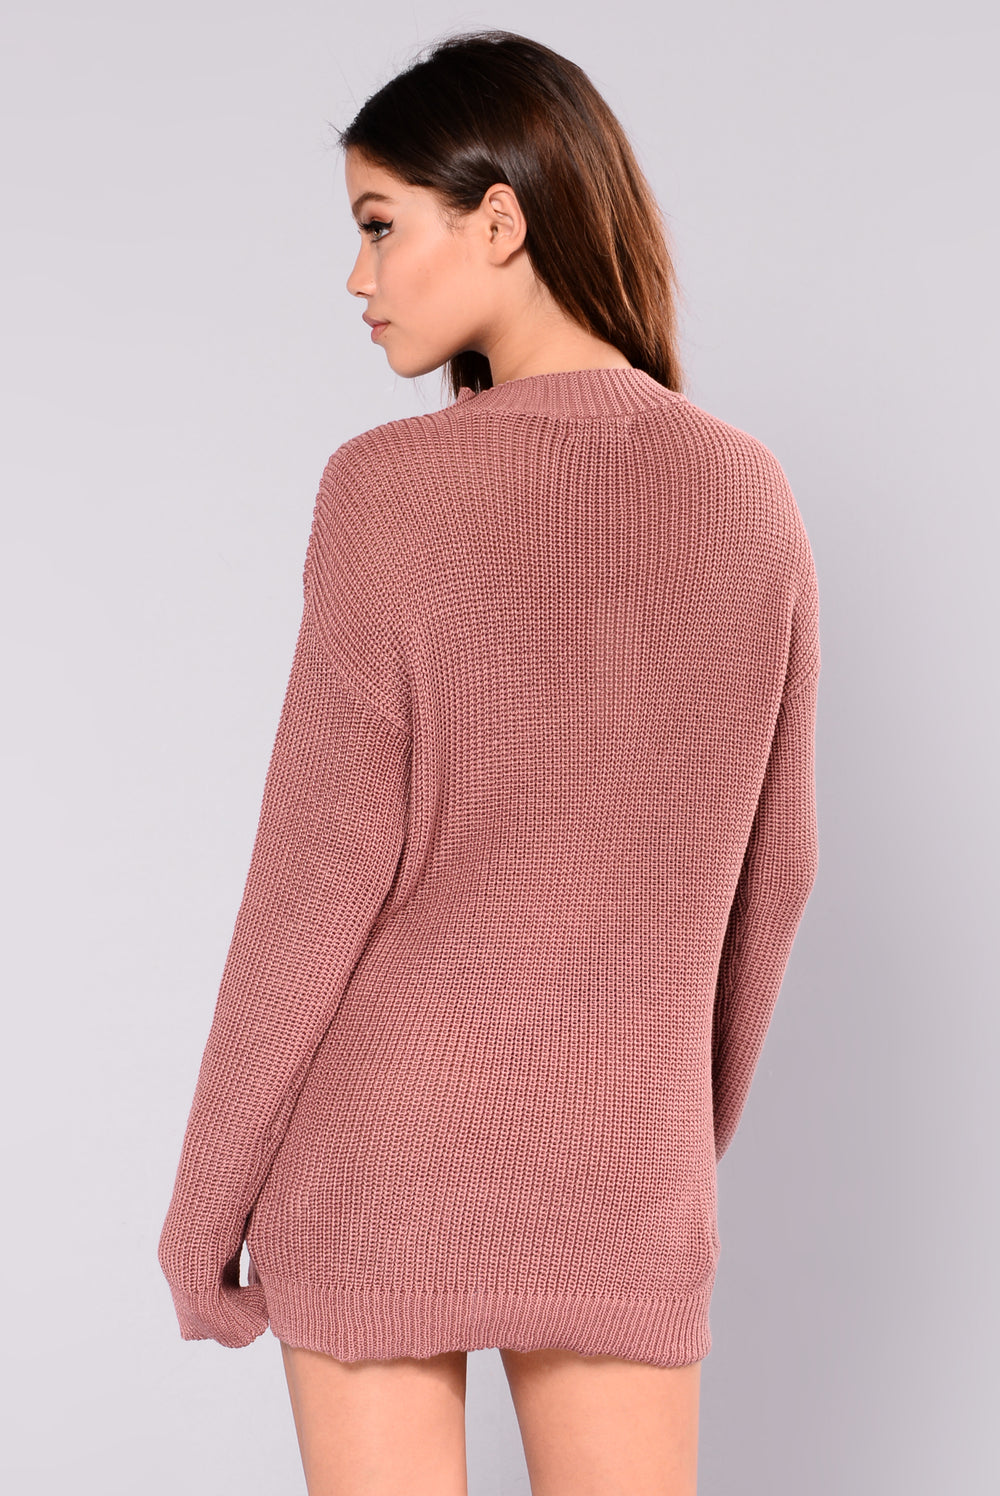 Queen Of Winter Sweater - Mauve